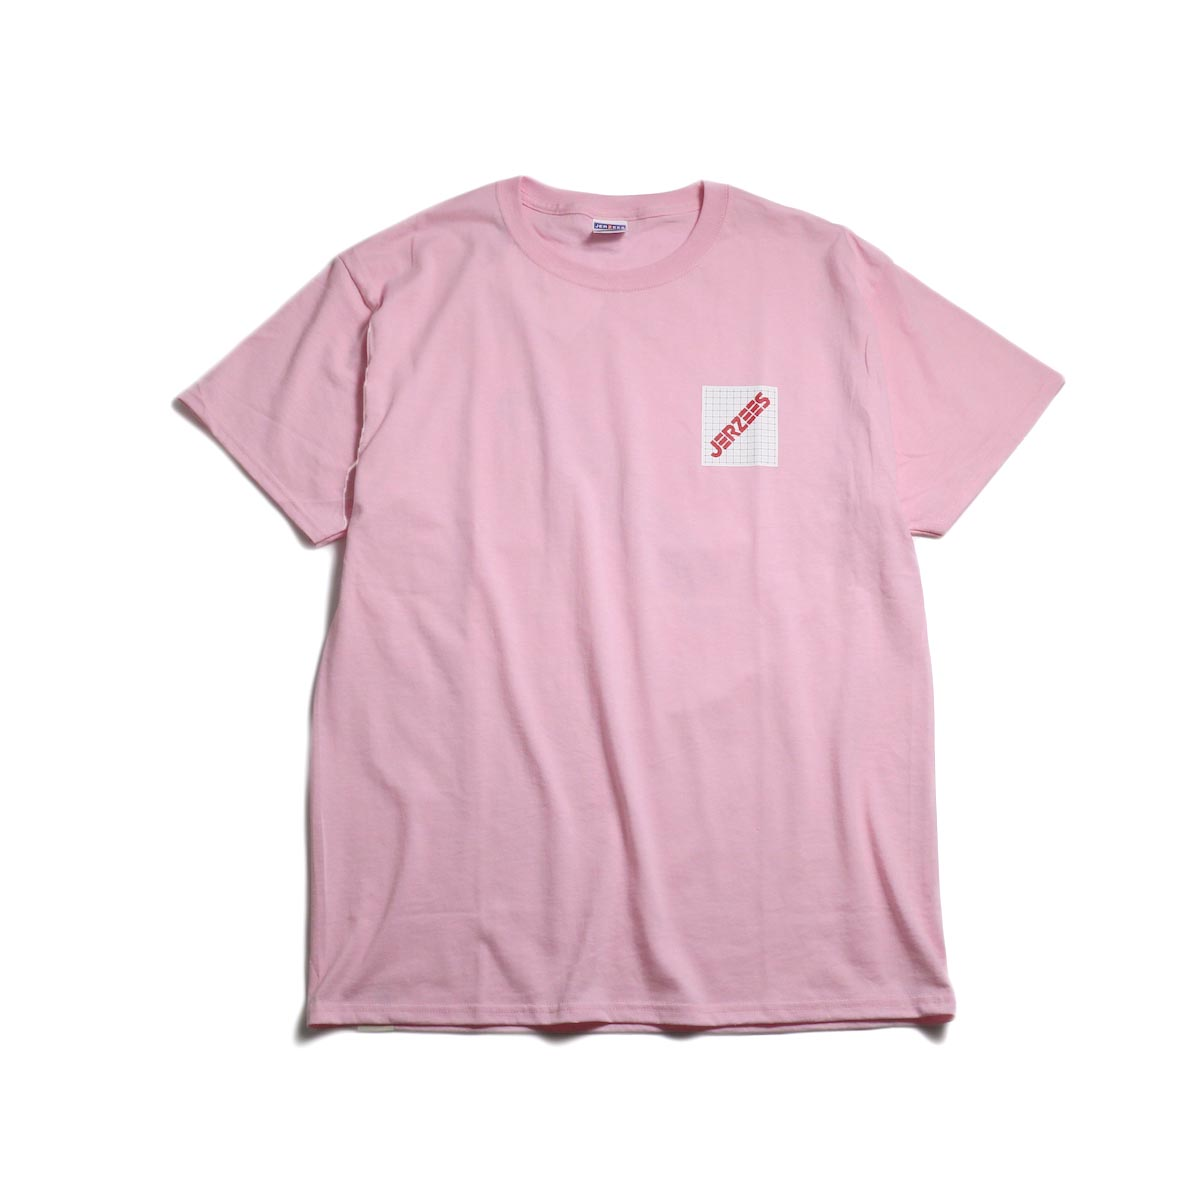 N.HOOLYWOOD × JERZEES  / 191-CS44-070 Short Sleeve Tee -Pink 正面